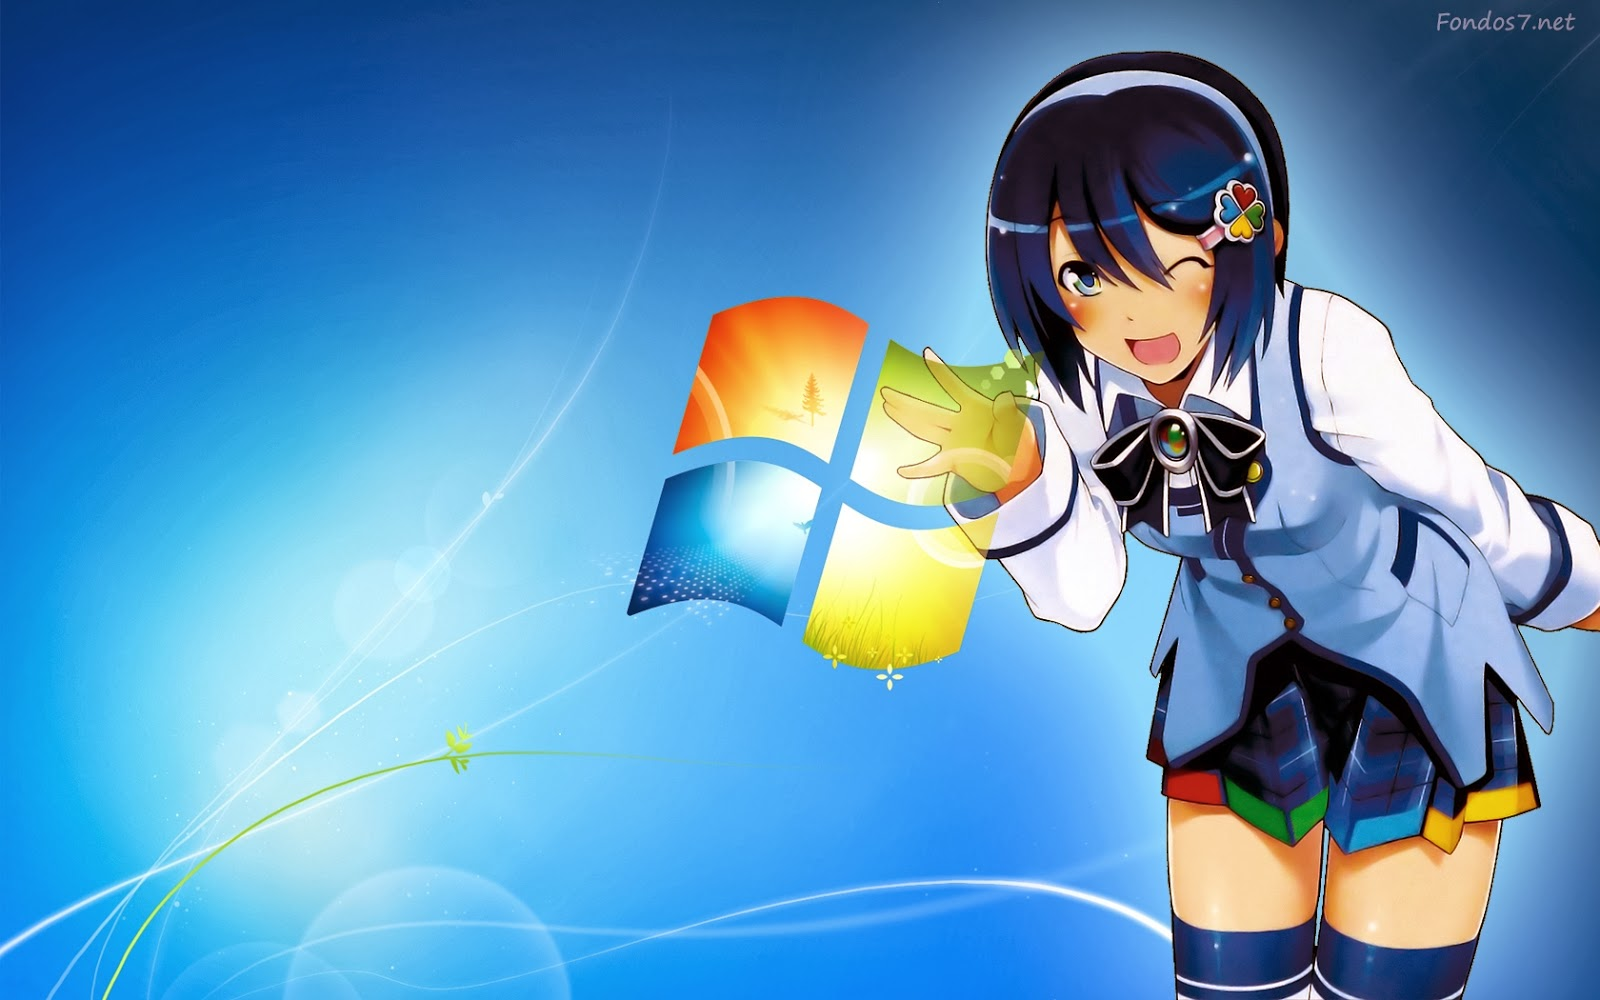 monmonkunblogspotcom201402where to download anime wallpaperhtml 1600x1000